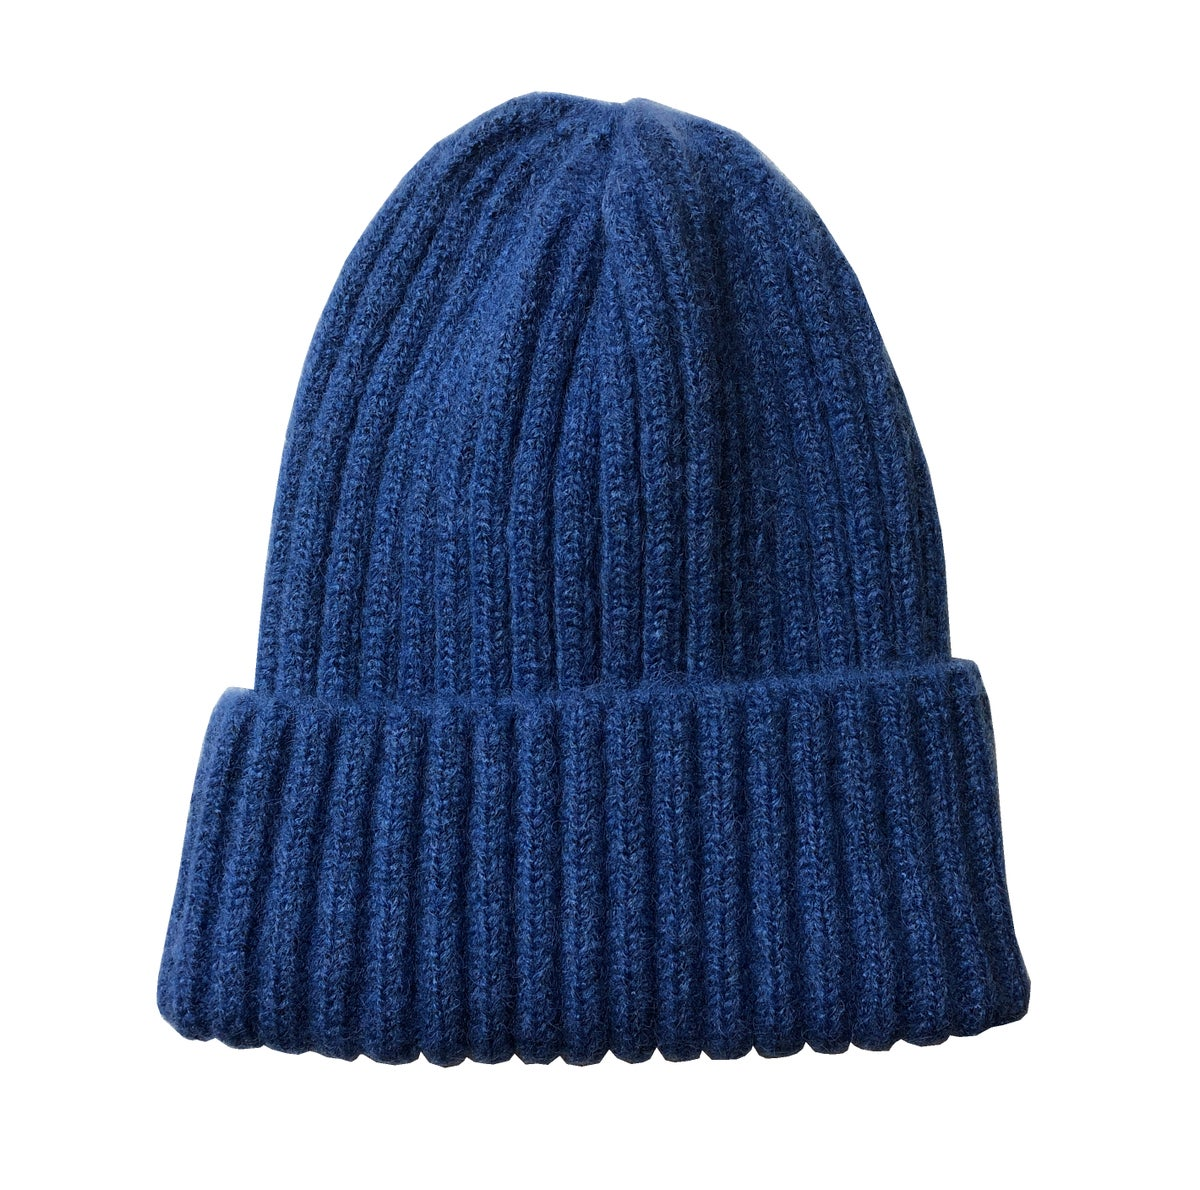 Image of Soft Fisherman's Beanie/ Watch Cap. Blue  (was £7.50)